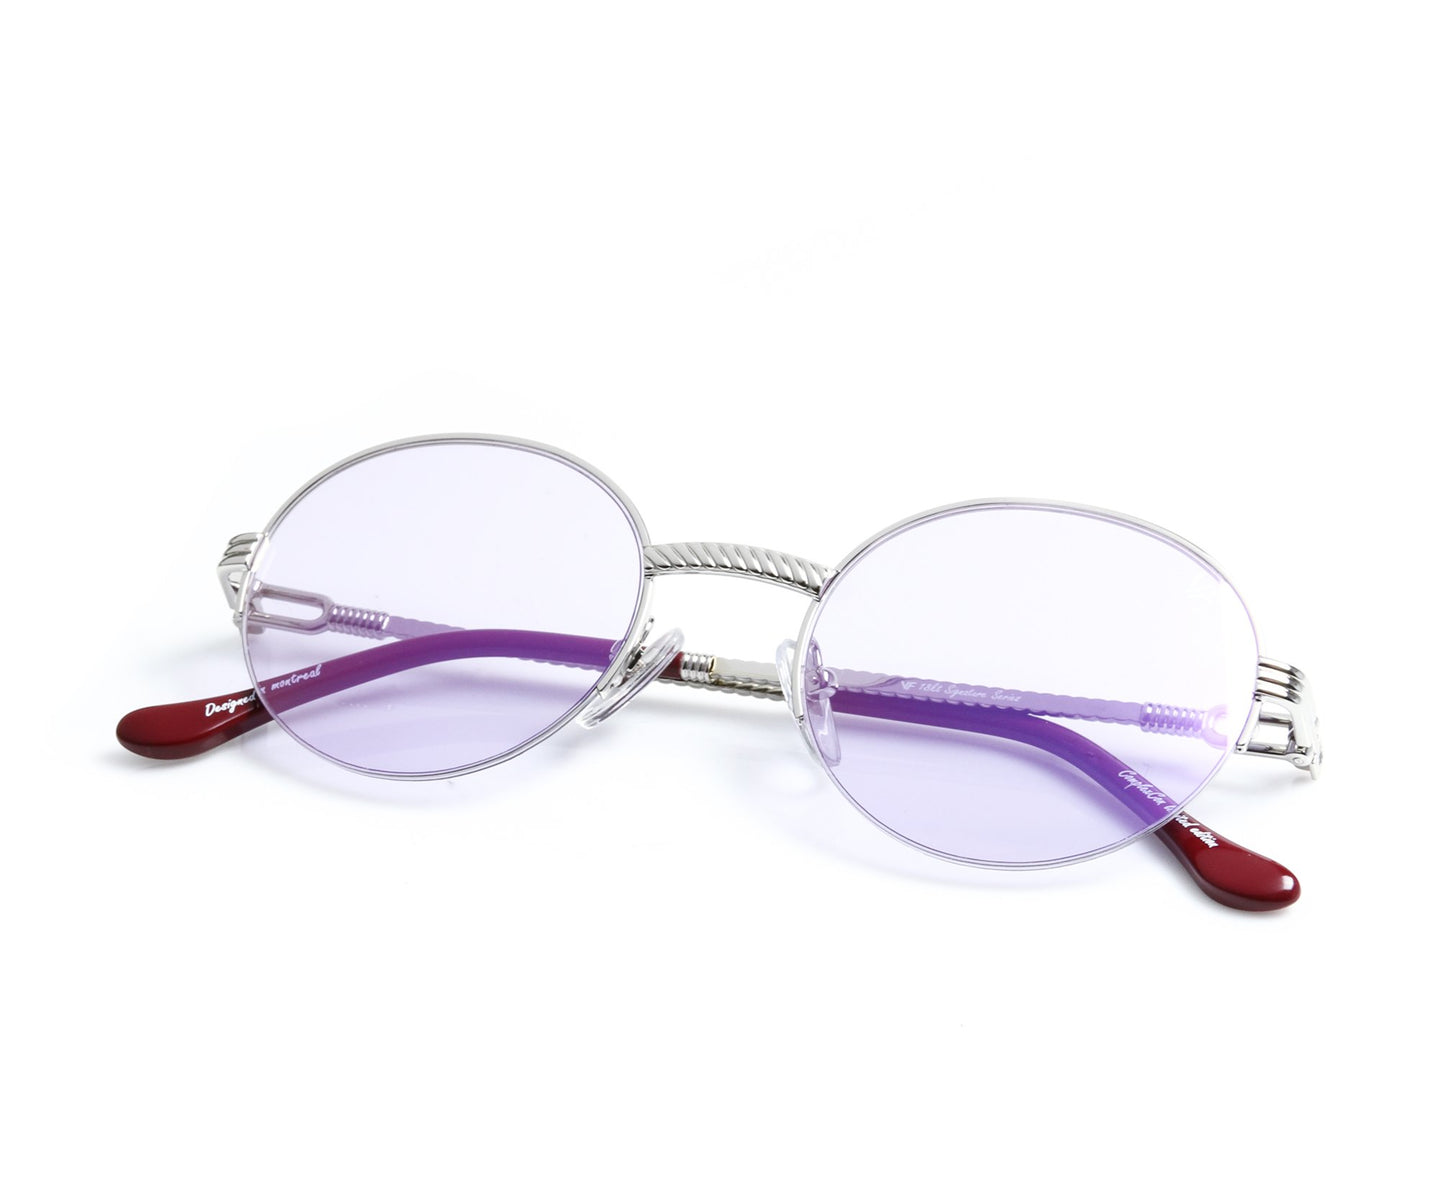 VF 508 Half Rim 18KT White Gold (Smoke Flash Purple) Thumbnail, VF by Vintage Frames , glasses frames, eyeglasses online, eyeglass frames, mens glasses, womens glasses, buy glasses online, designer eyeglasses, vintage sunglasses, retro sunglasses, vintage glasses, sunglass, eyeglass, glasses, lens, vintage frames company, vf